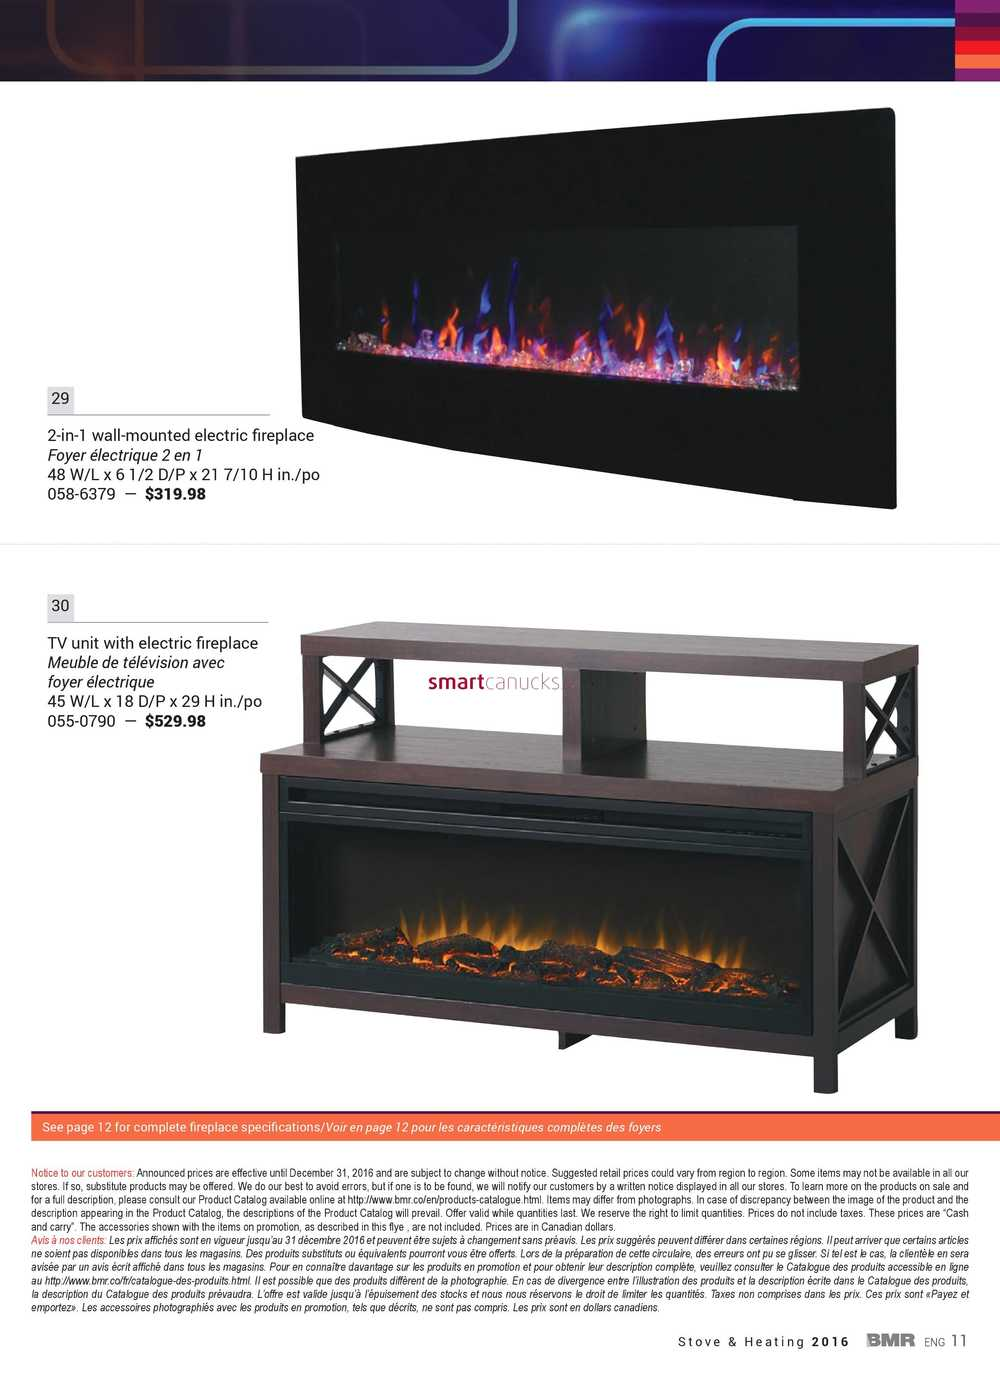 Bmr Stove Heating Catalog 2016 # Meuble Tele Foyer Electrique